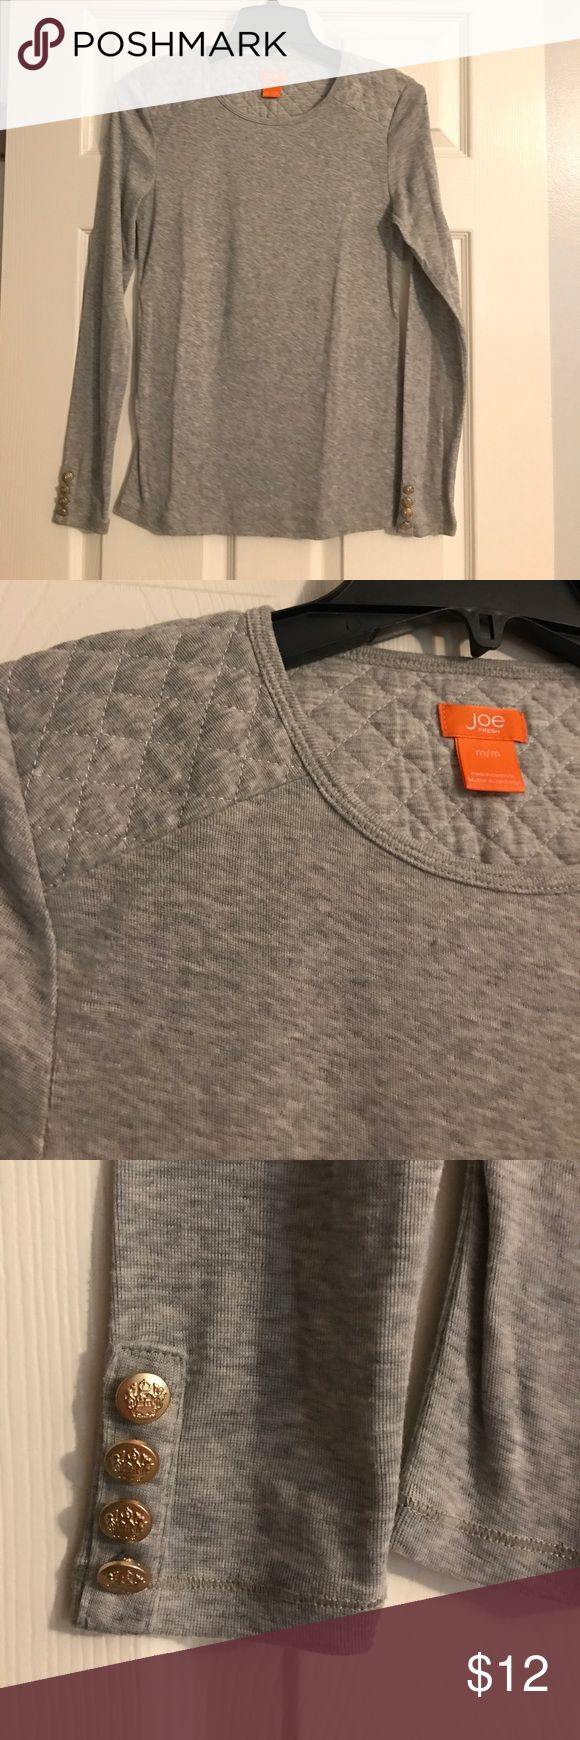 Joe Fresh grey long sleeve top Quilted shoulder detailing with gold buttons on the sleeves. Size medium. Excellent condition. Joe Fresh Tops Tees - Long Sleeve